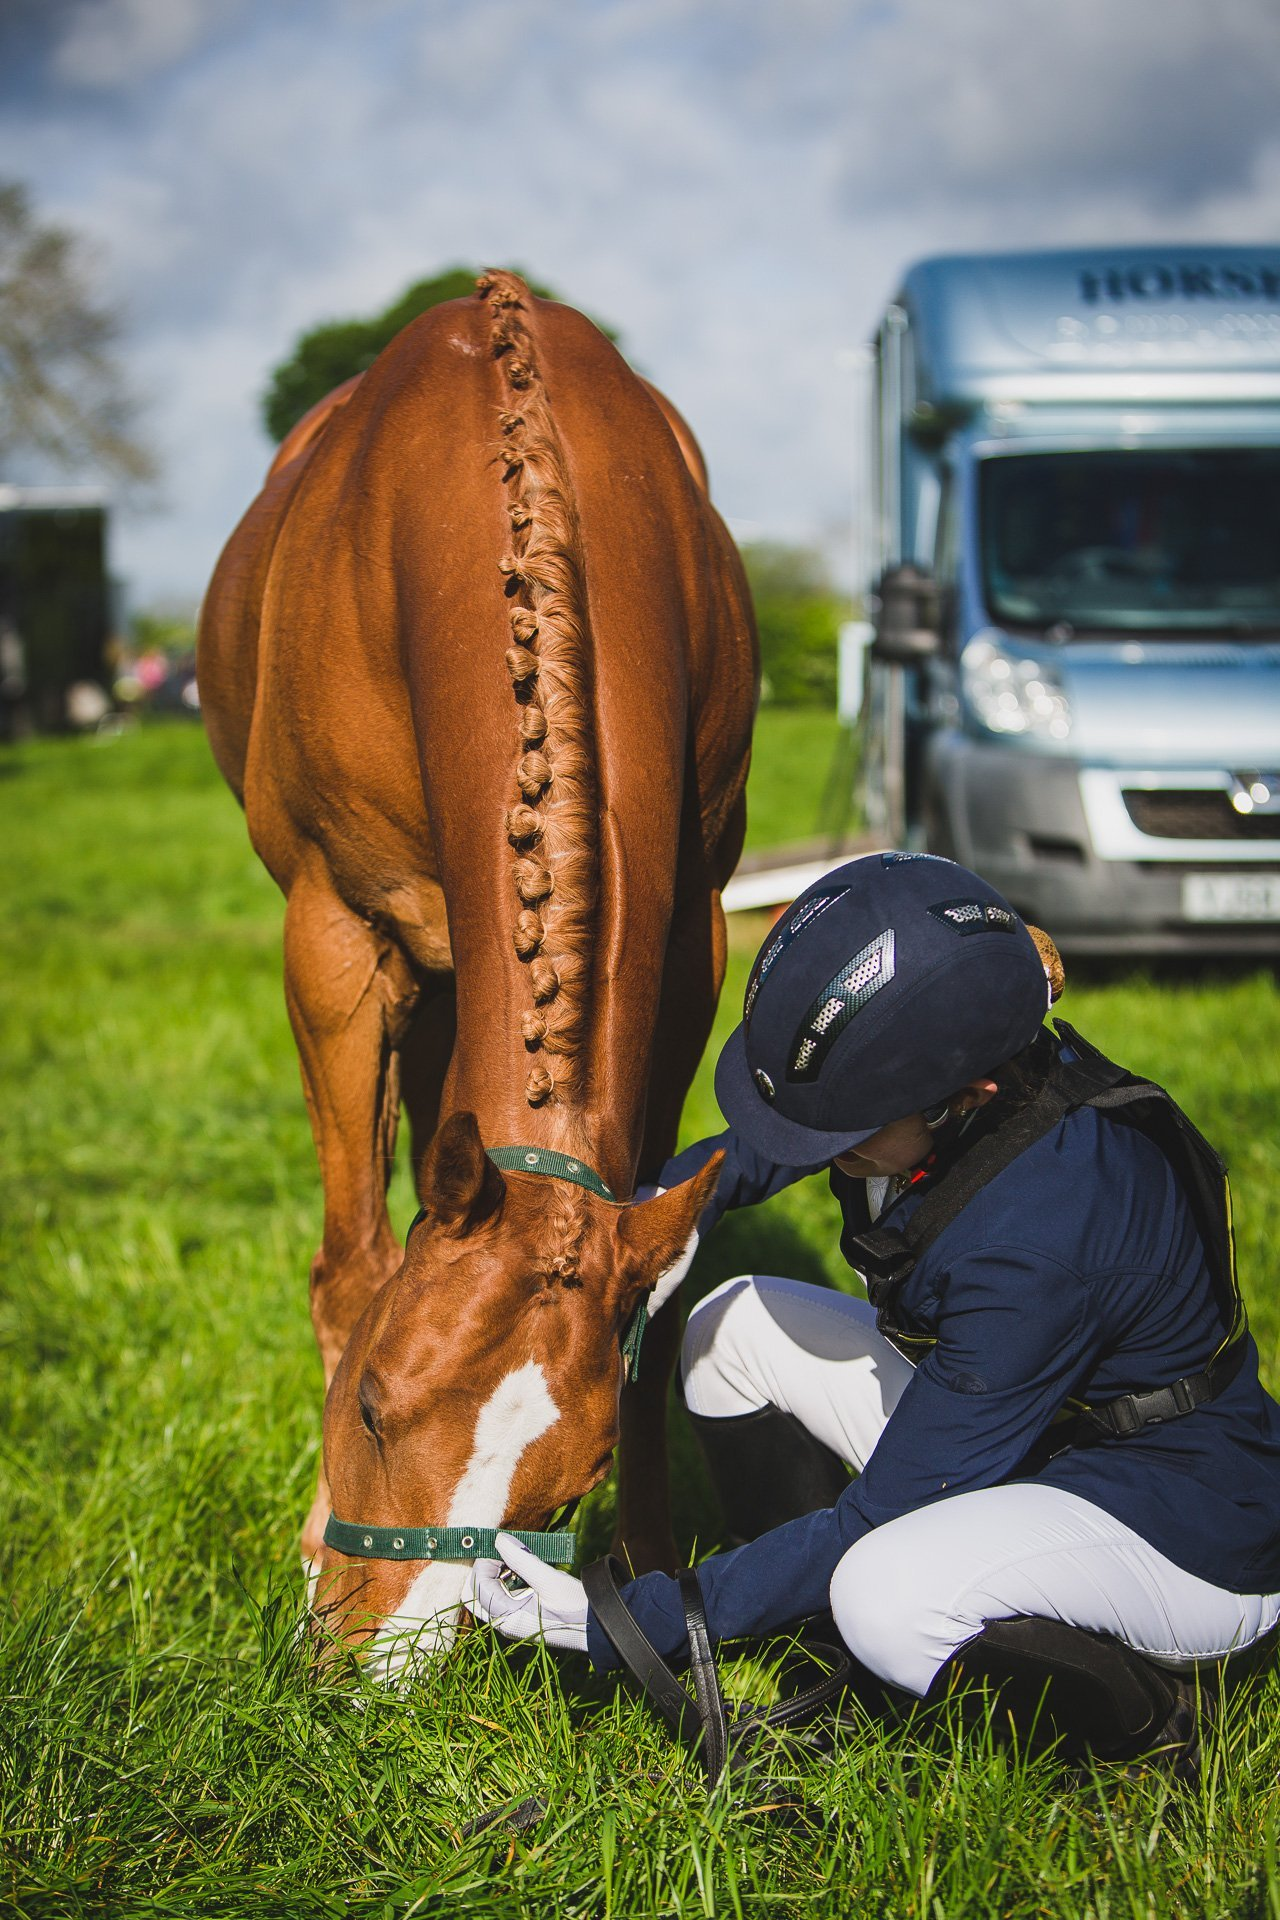 getting ready for show jumping - b*spoke competition shoot